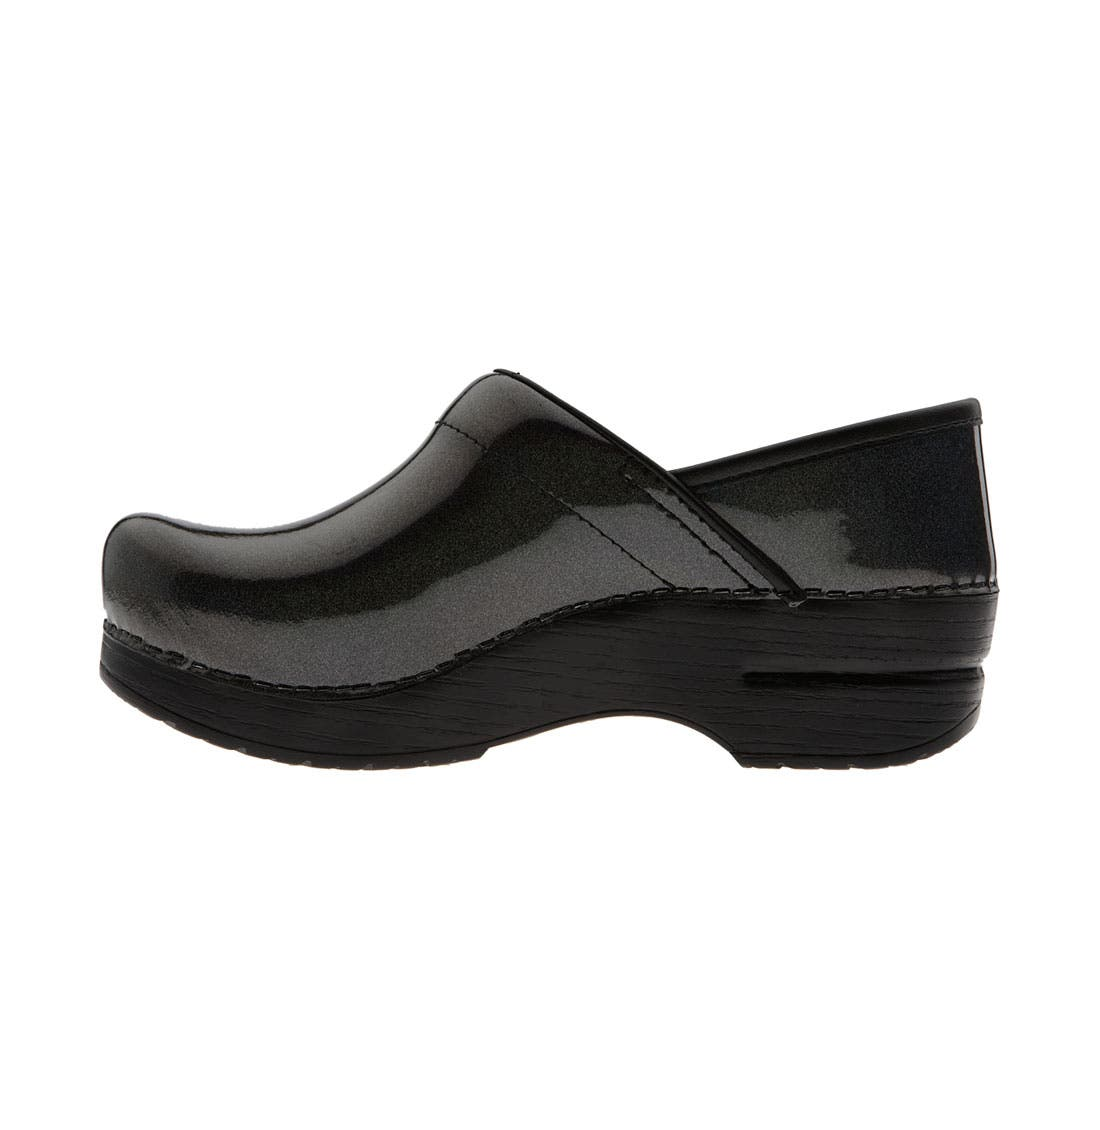 Alternate Image 2  - Dansko 'Professional Prism' Patent Leather Clog